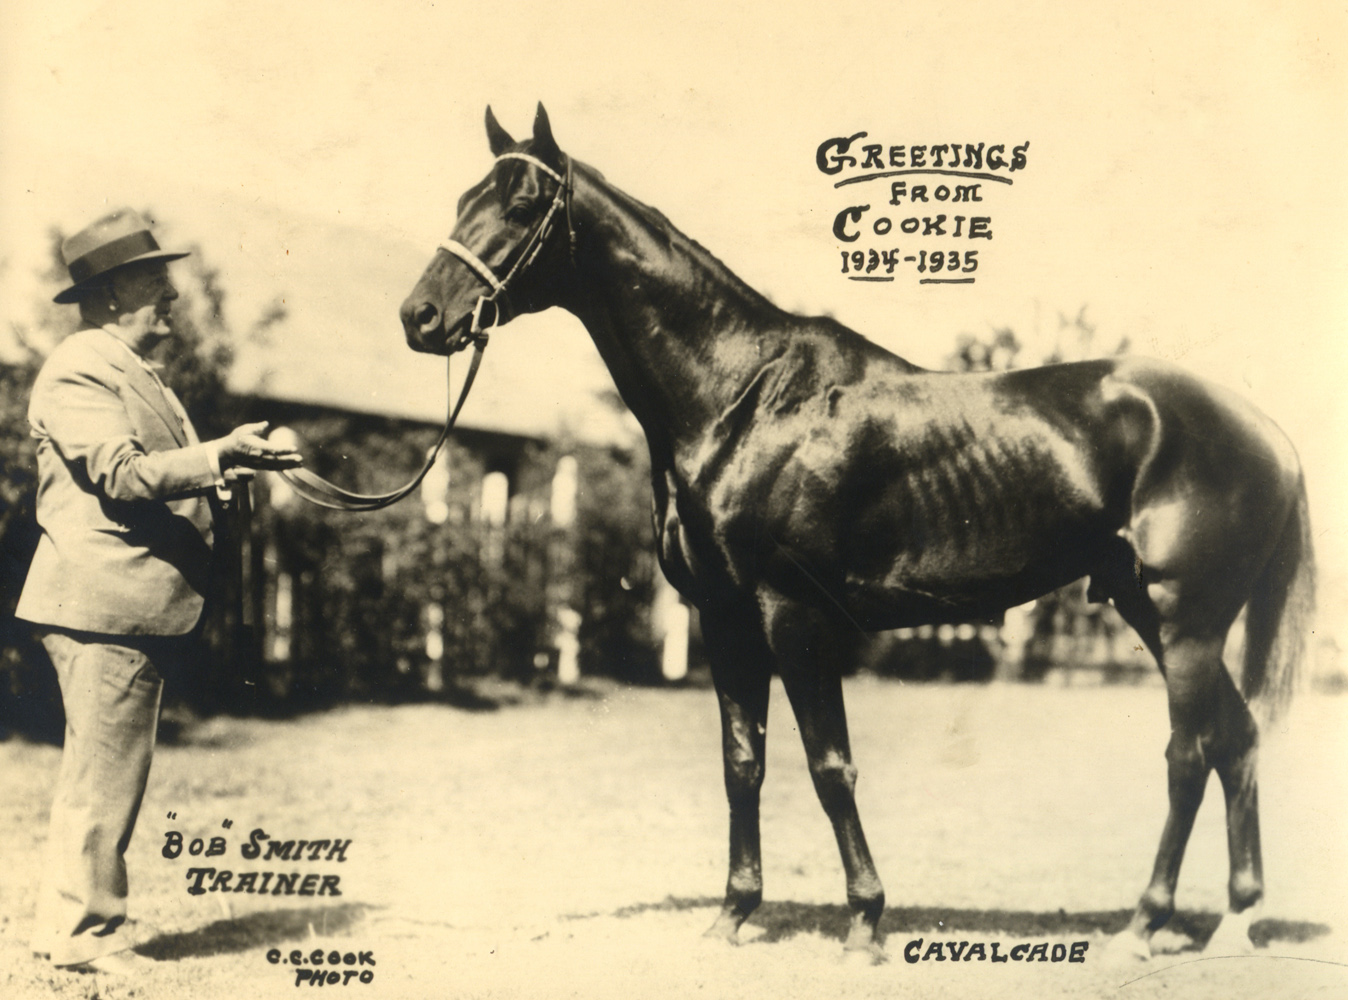 1934-35 photo-greeting card by C. C. Cook featuring trainer Bob Smith and Hall of Fame horse Cavalcade (C. C. Cook/Museum Collection)